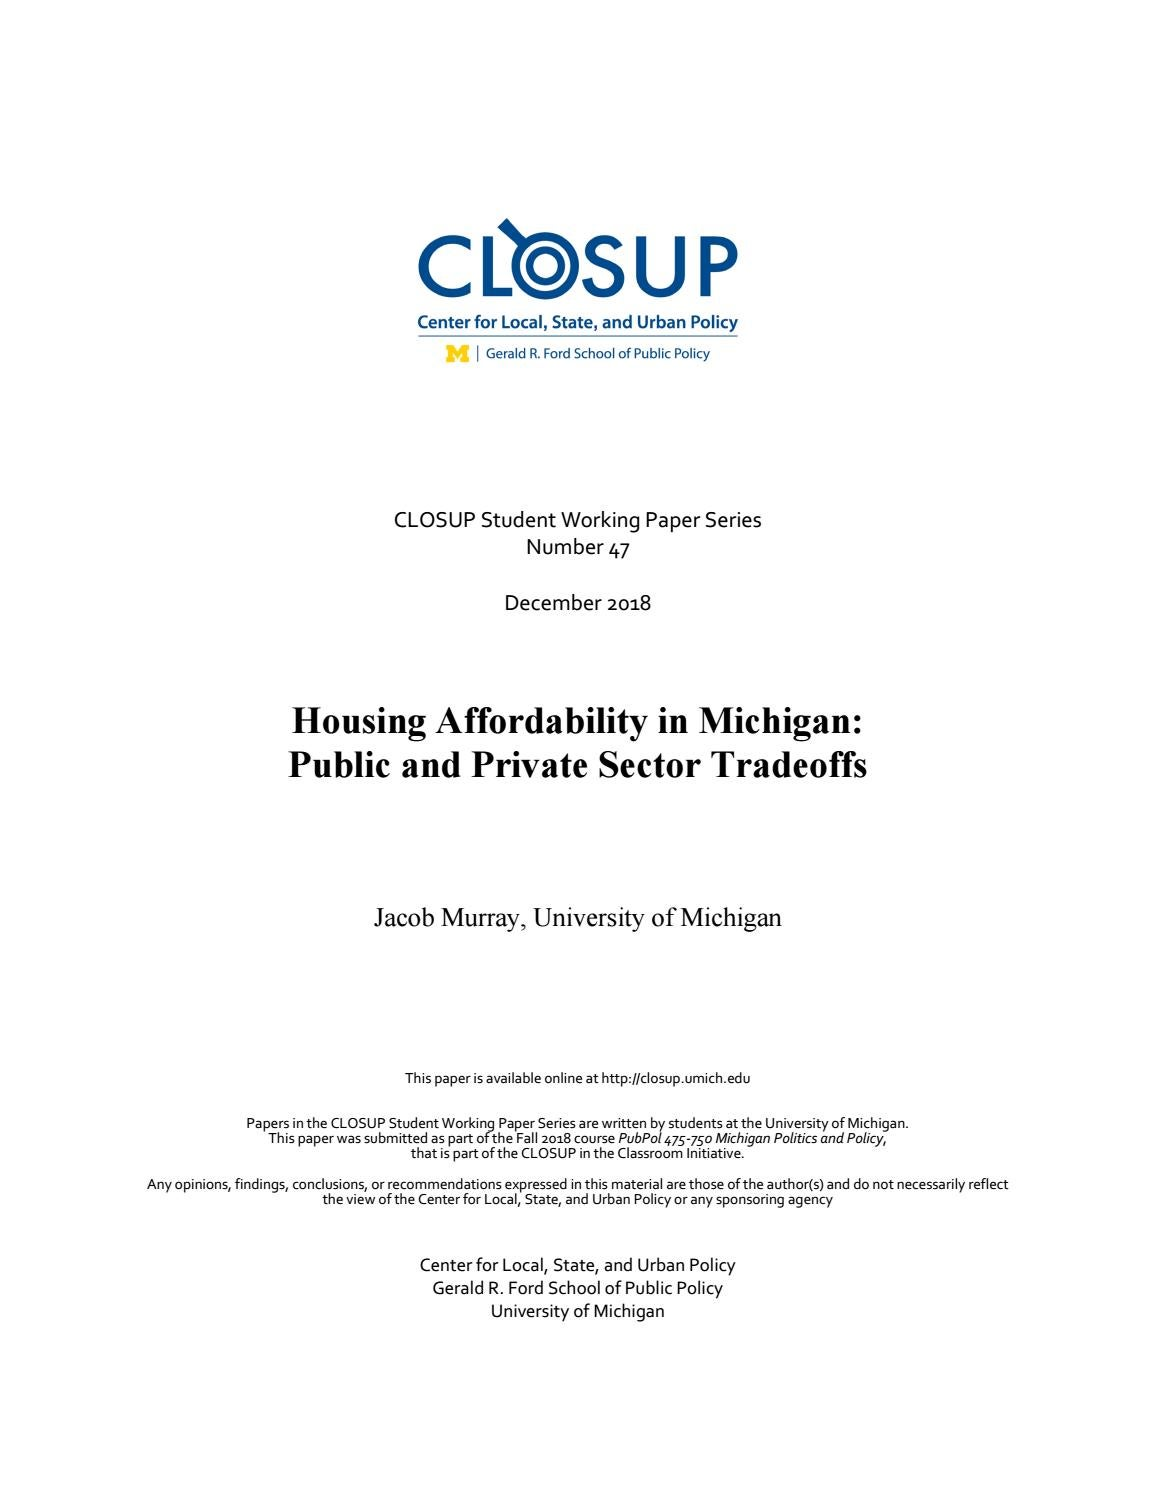 Housing Affordability in Michigan: Public and Private Sector